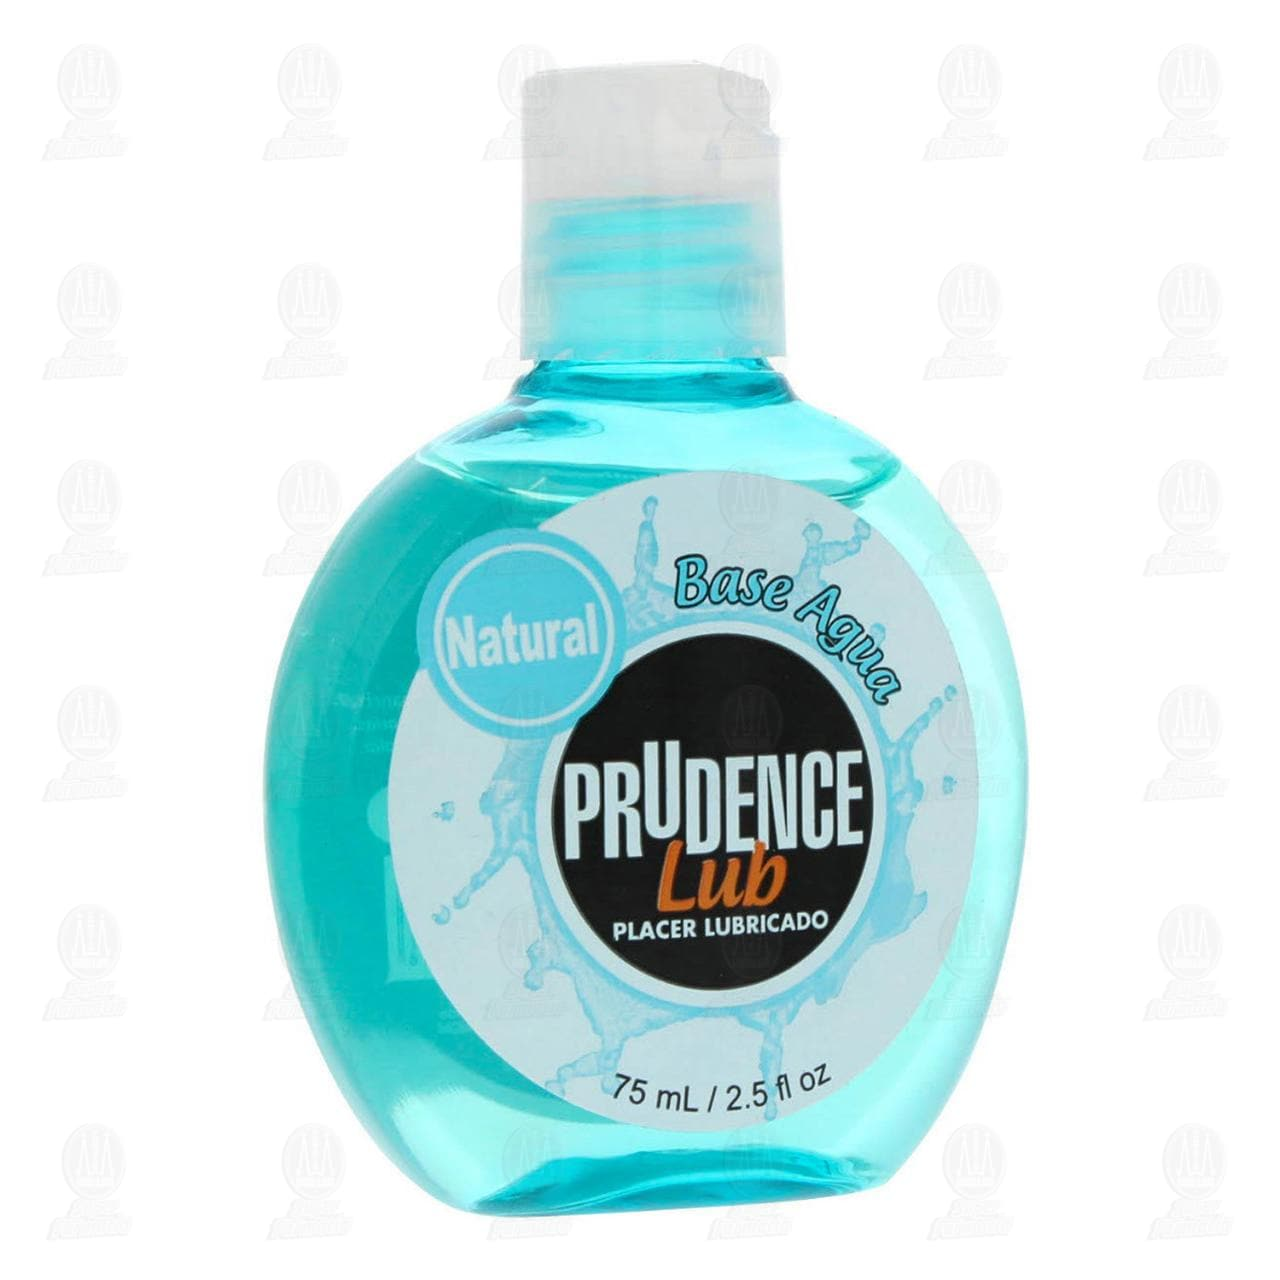 Prudence Lubricante Íntimo Natural 75ml